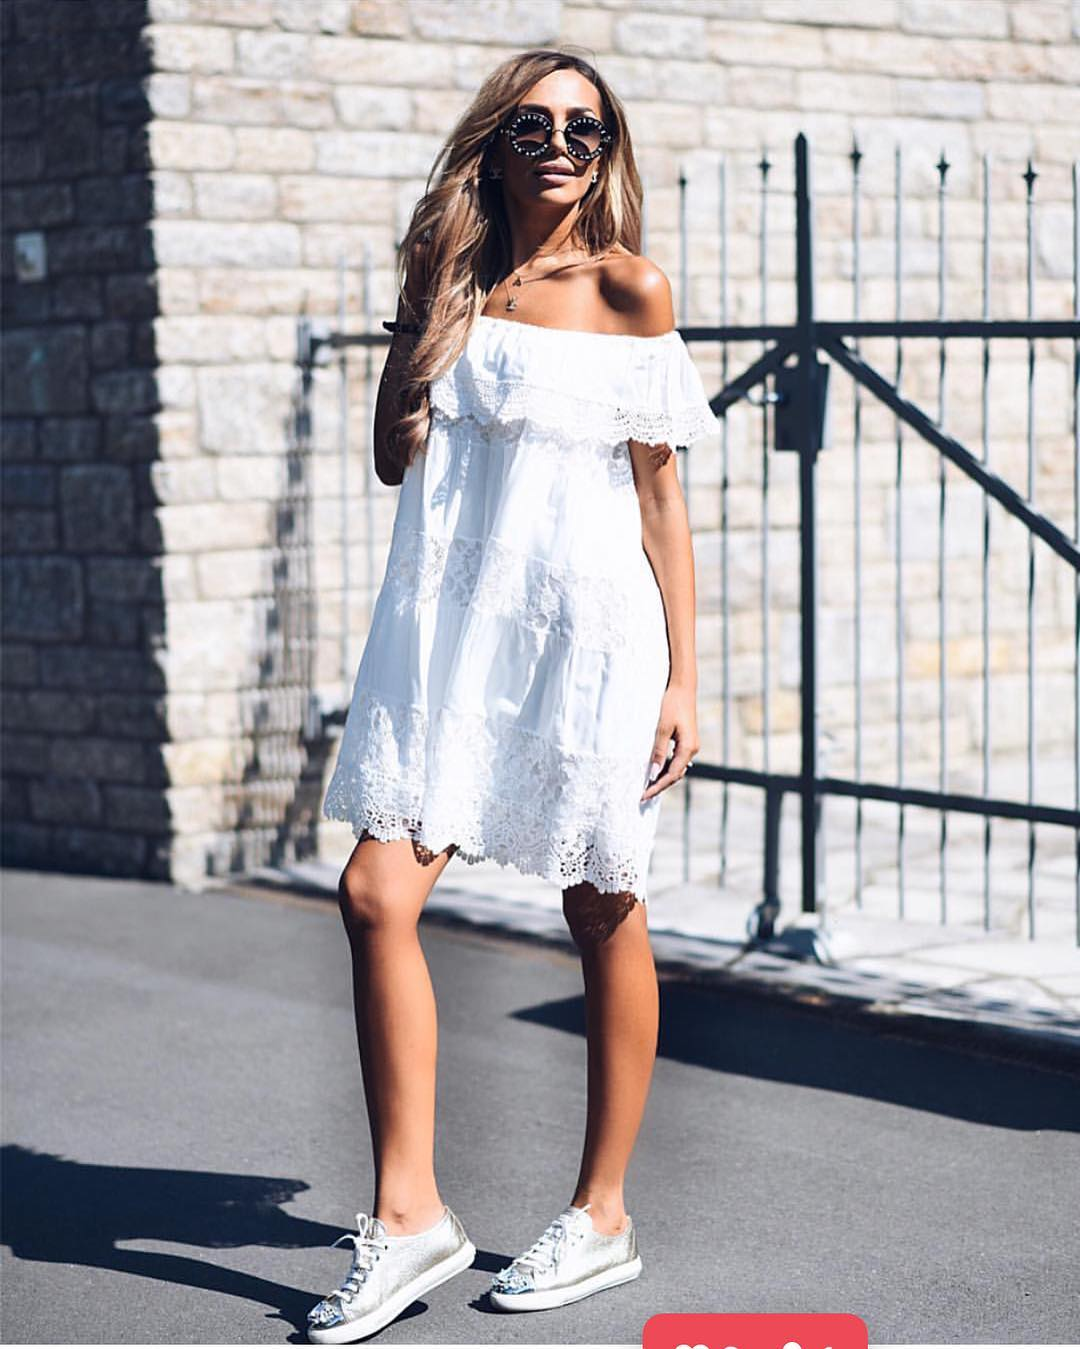 Off Shoulder White Crochet Dress And Silver Sneakers For Summer 2019